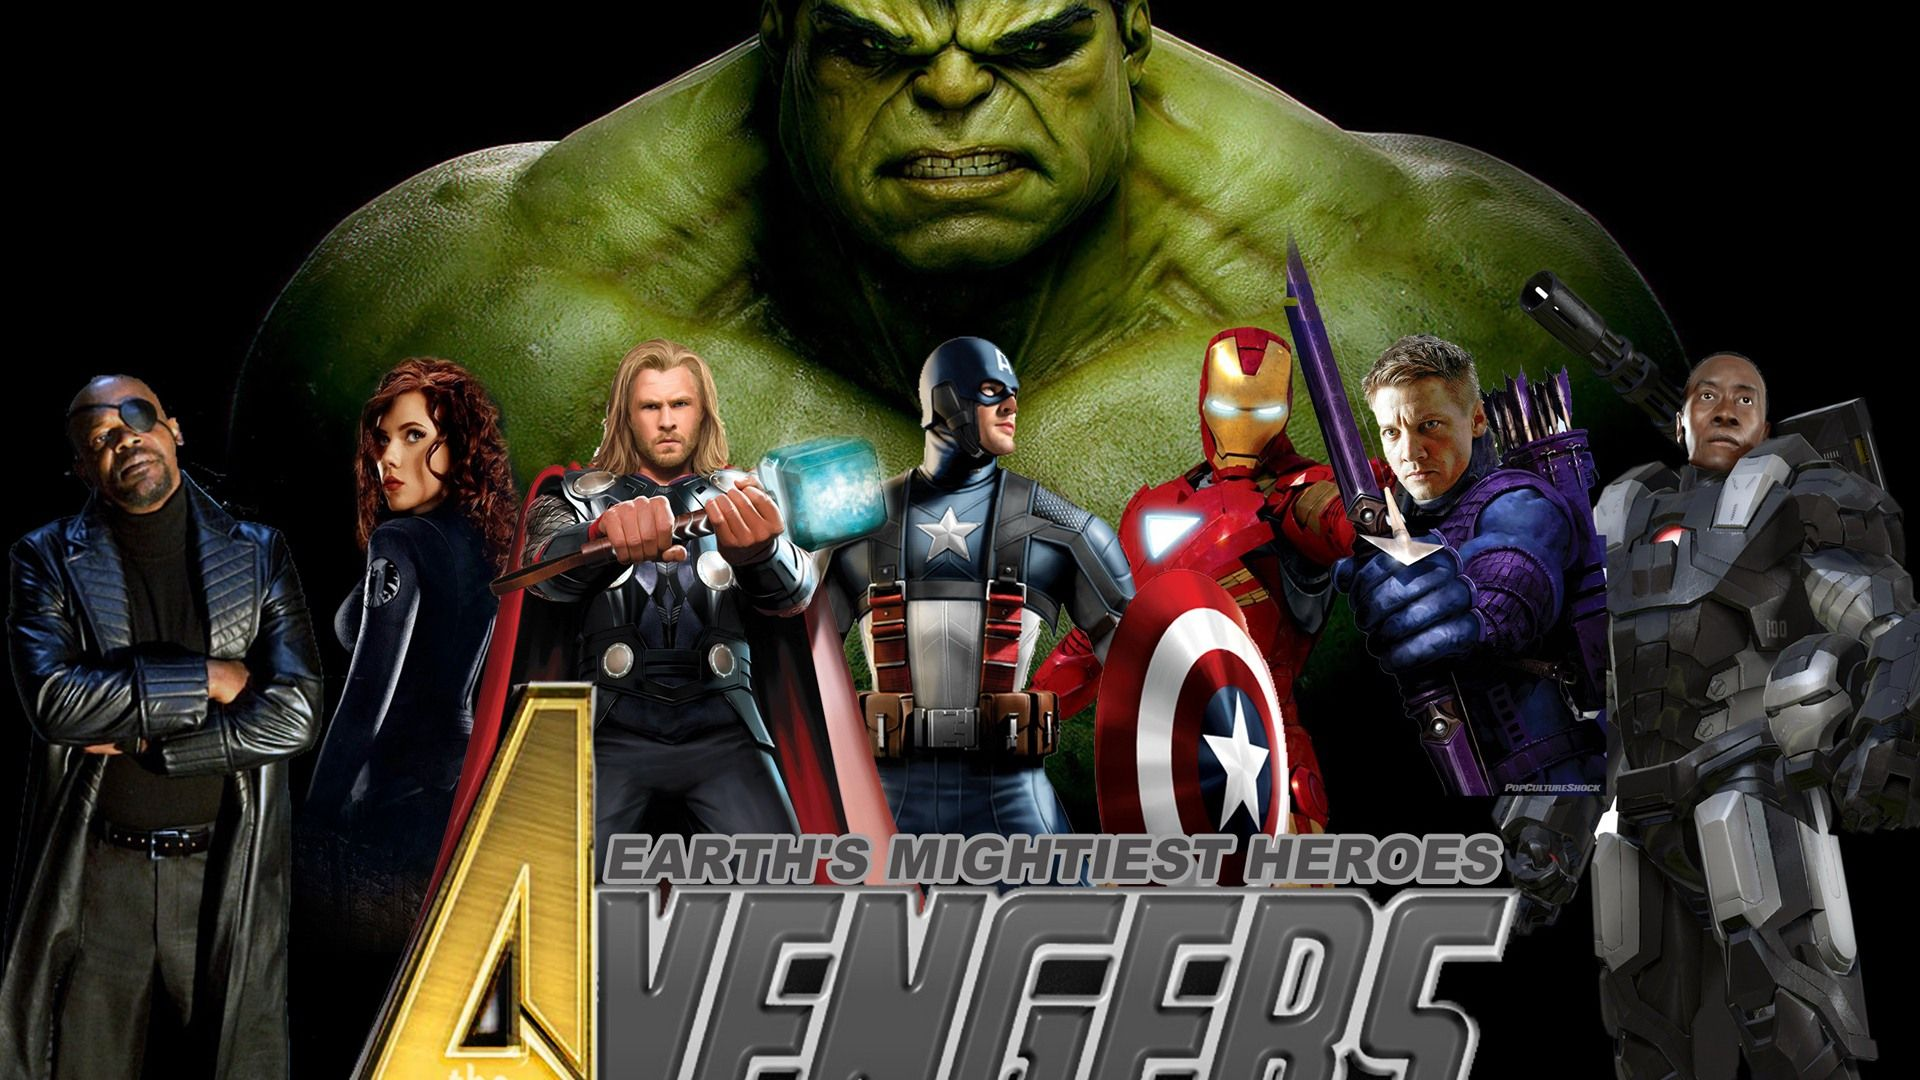 The Avengers Wallpaper Collection For Free Download HD